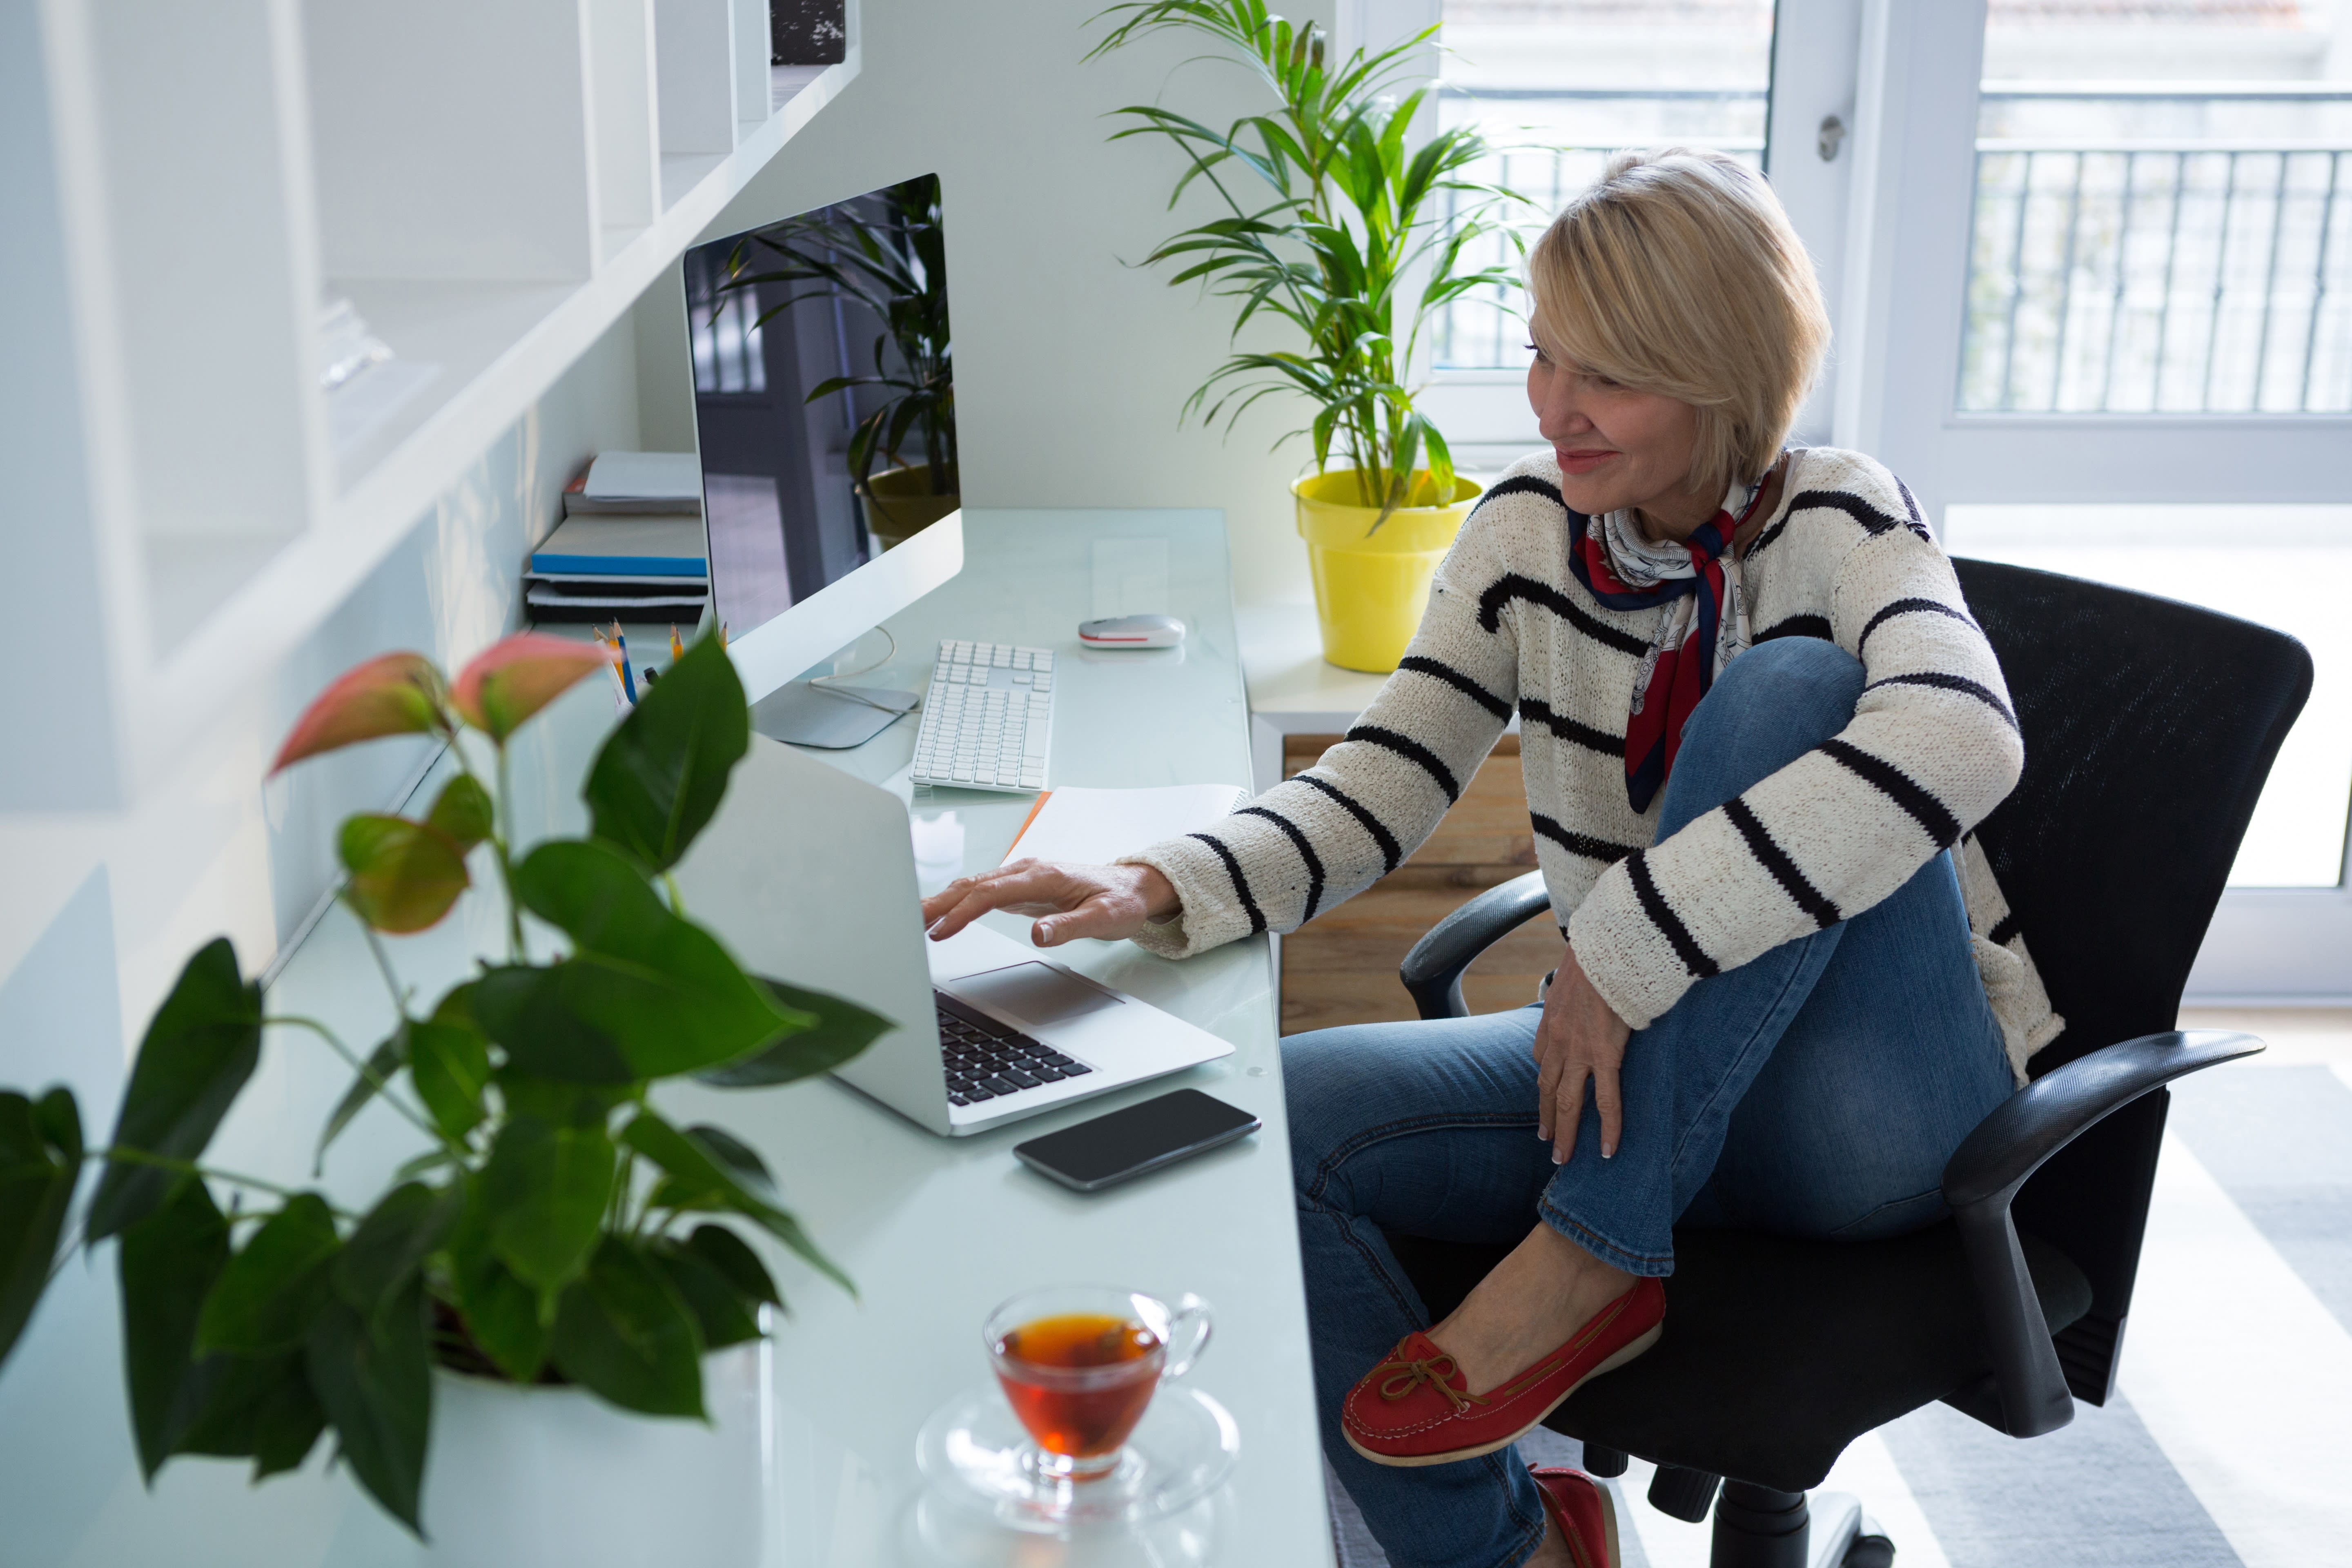 Blonde woman sitting in desk chair with one leg up working on laptop